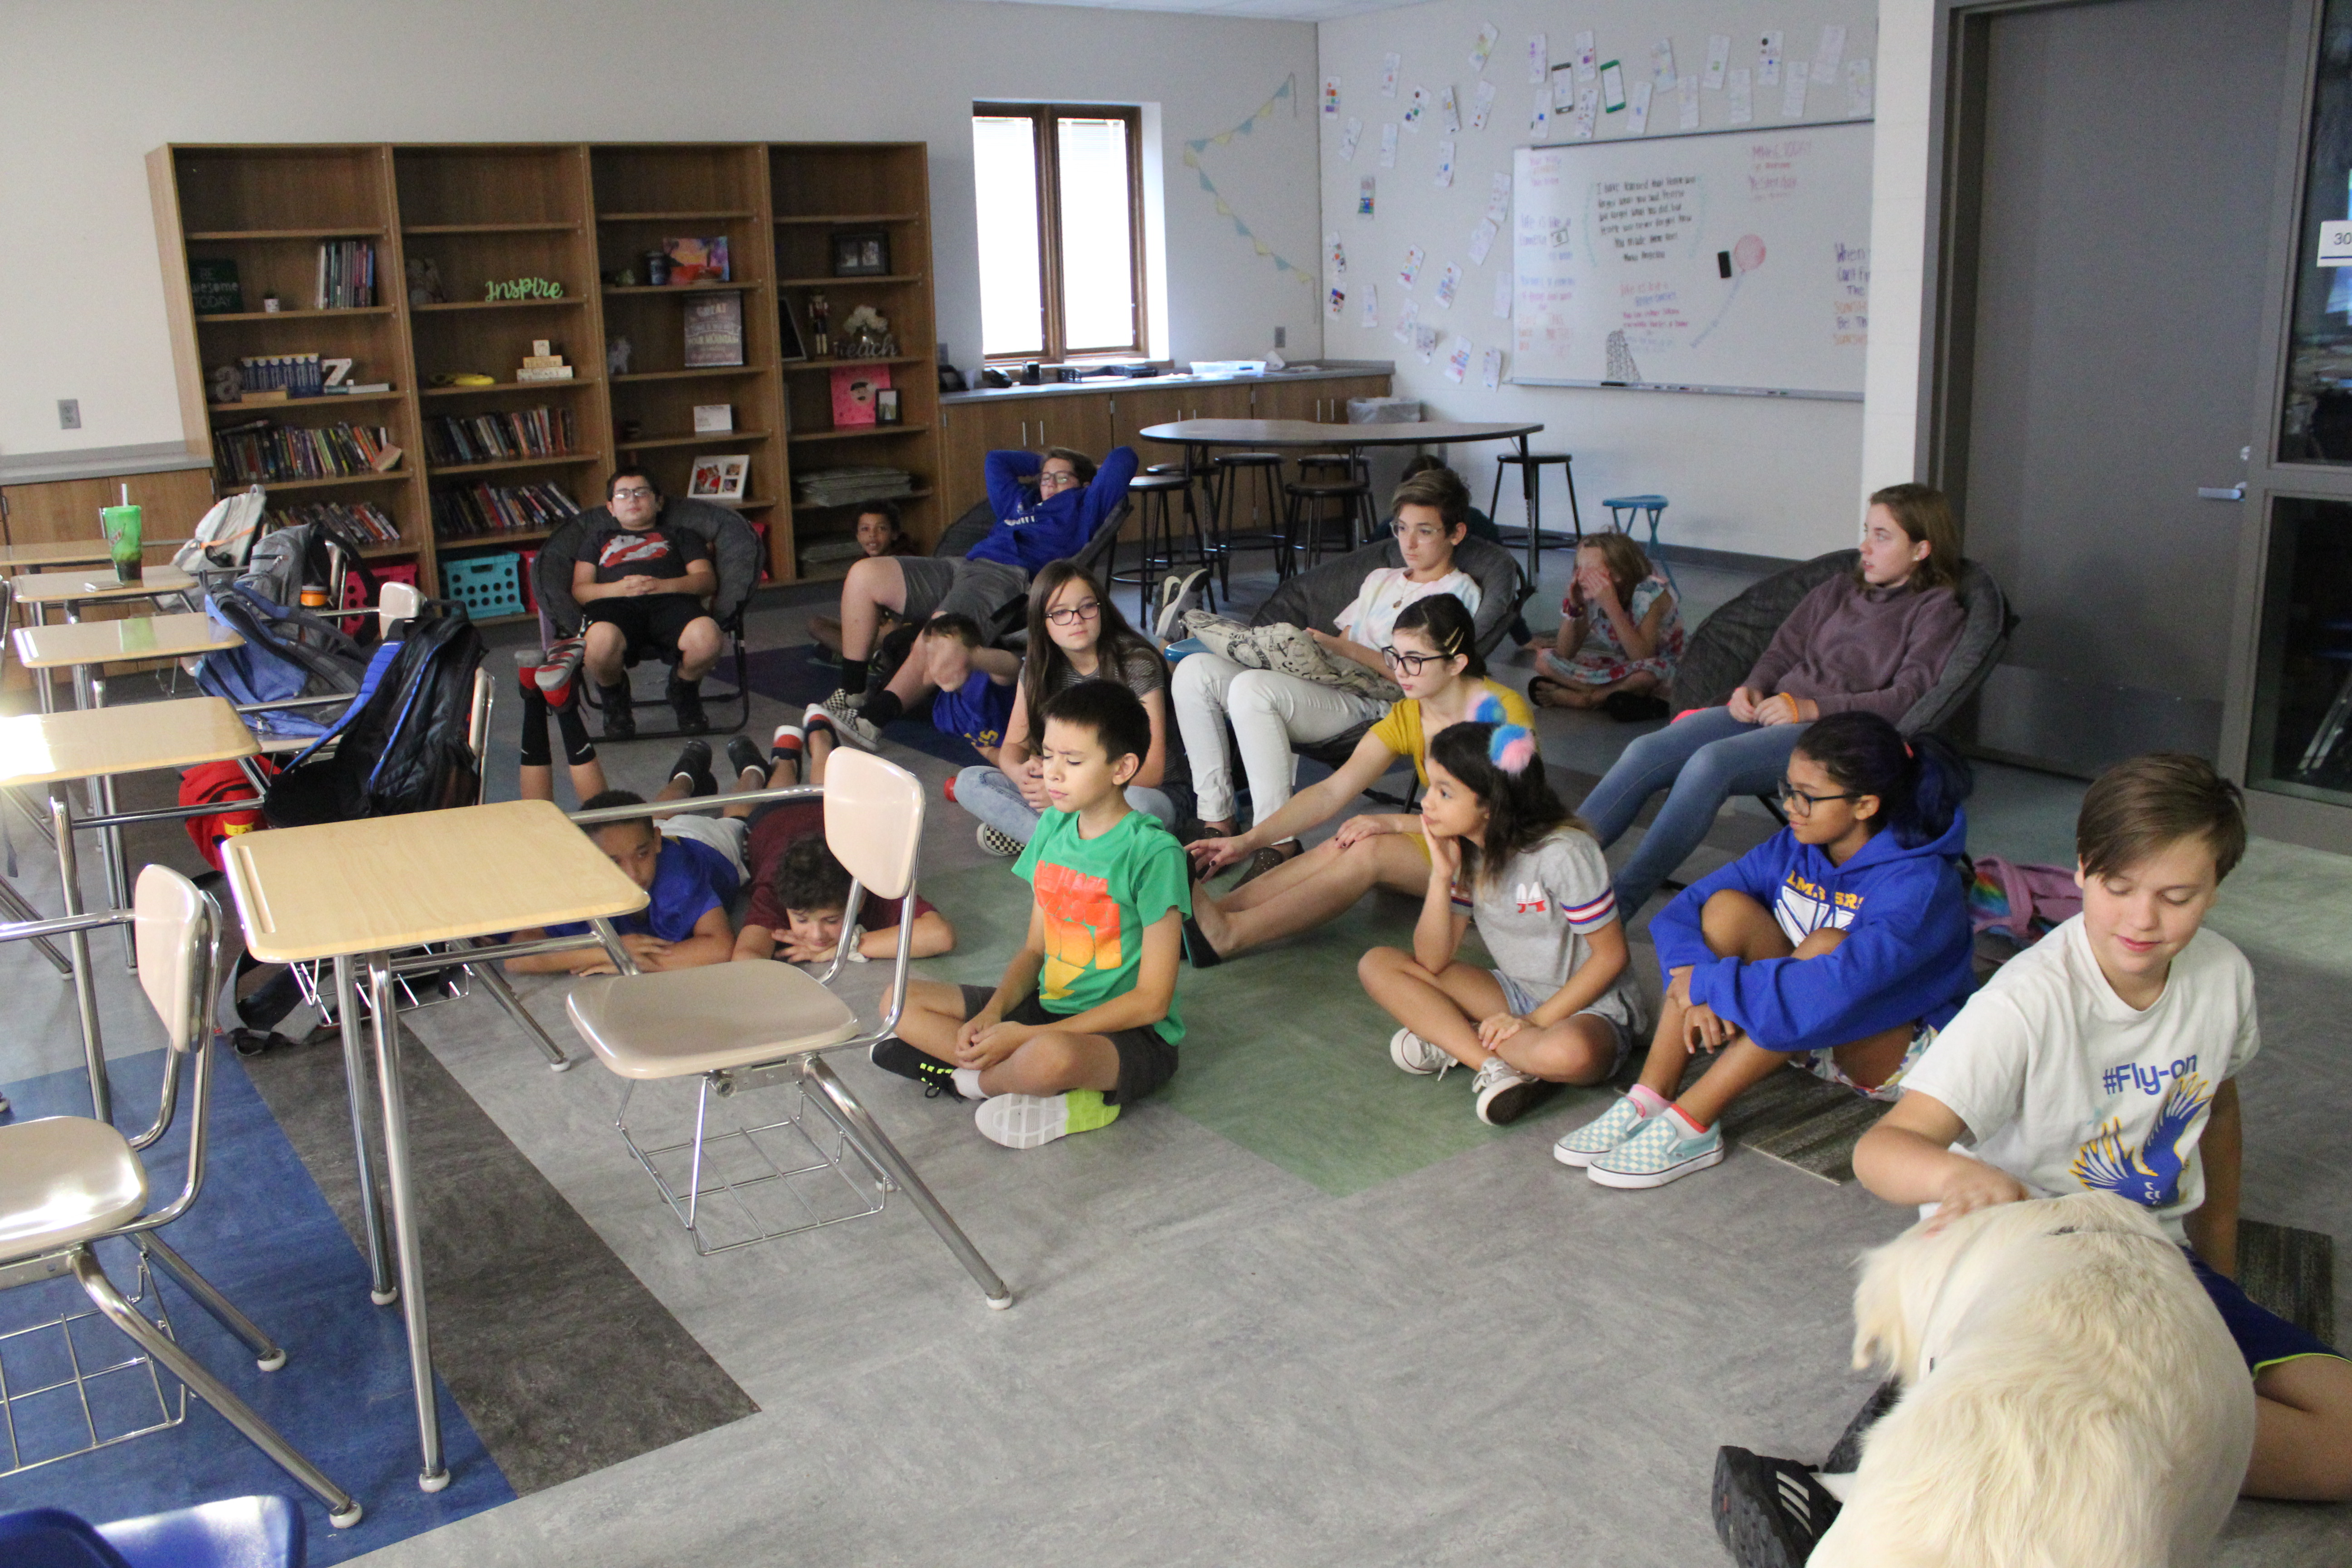 Liberty Middle School meditation club helps students start the day right